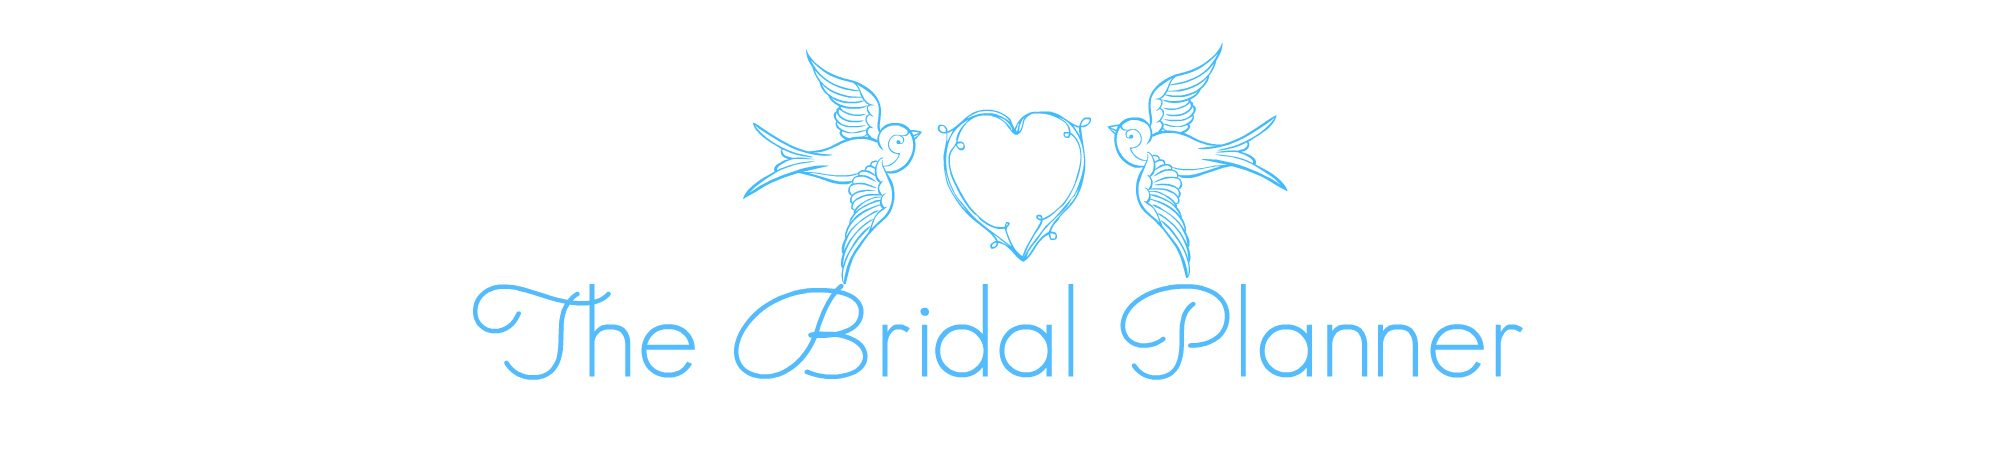 The Bridal Planner